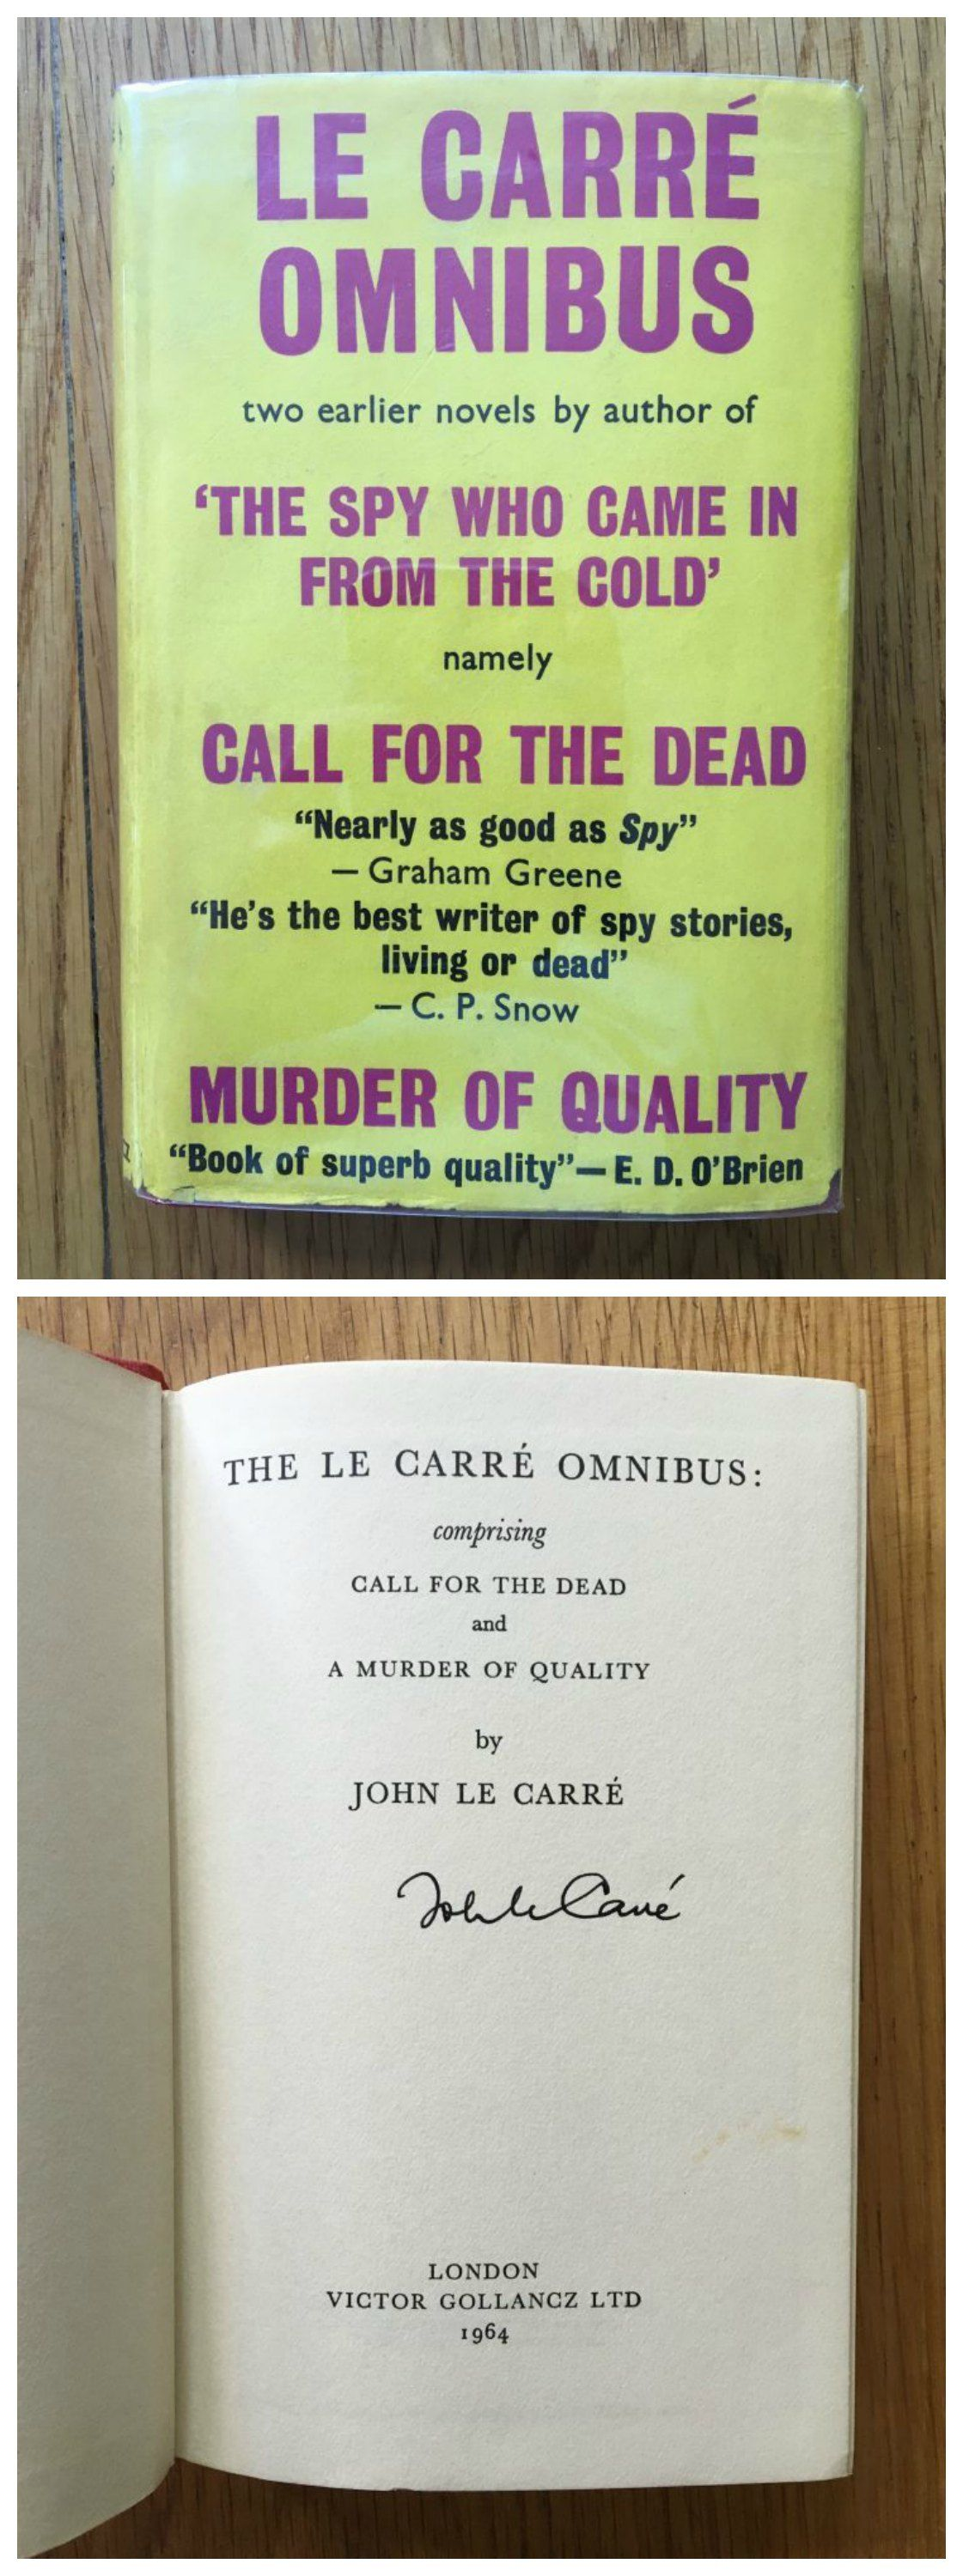 Signed edition of Le Carre's Omnibus including three of his biggest novels.